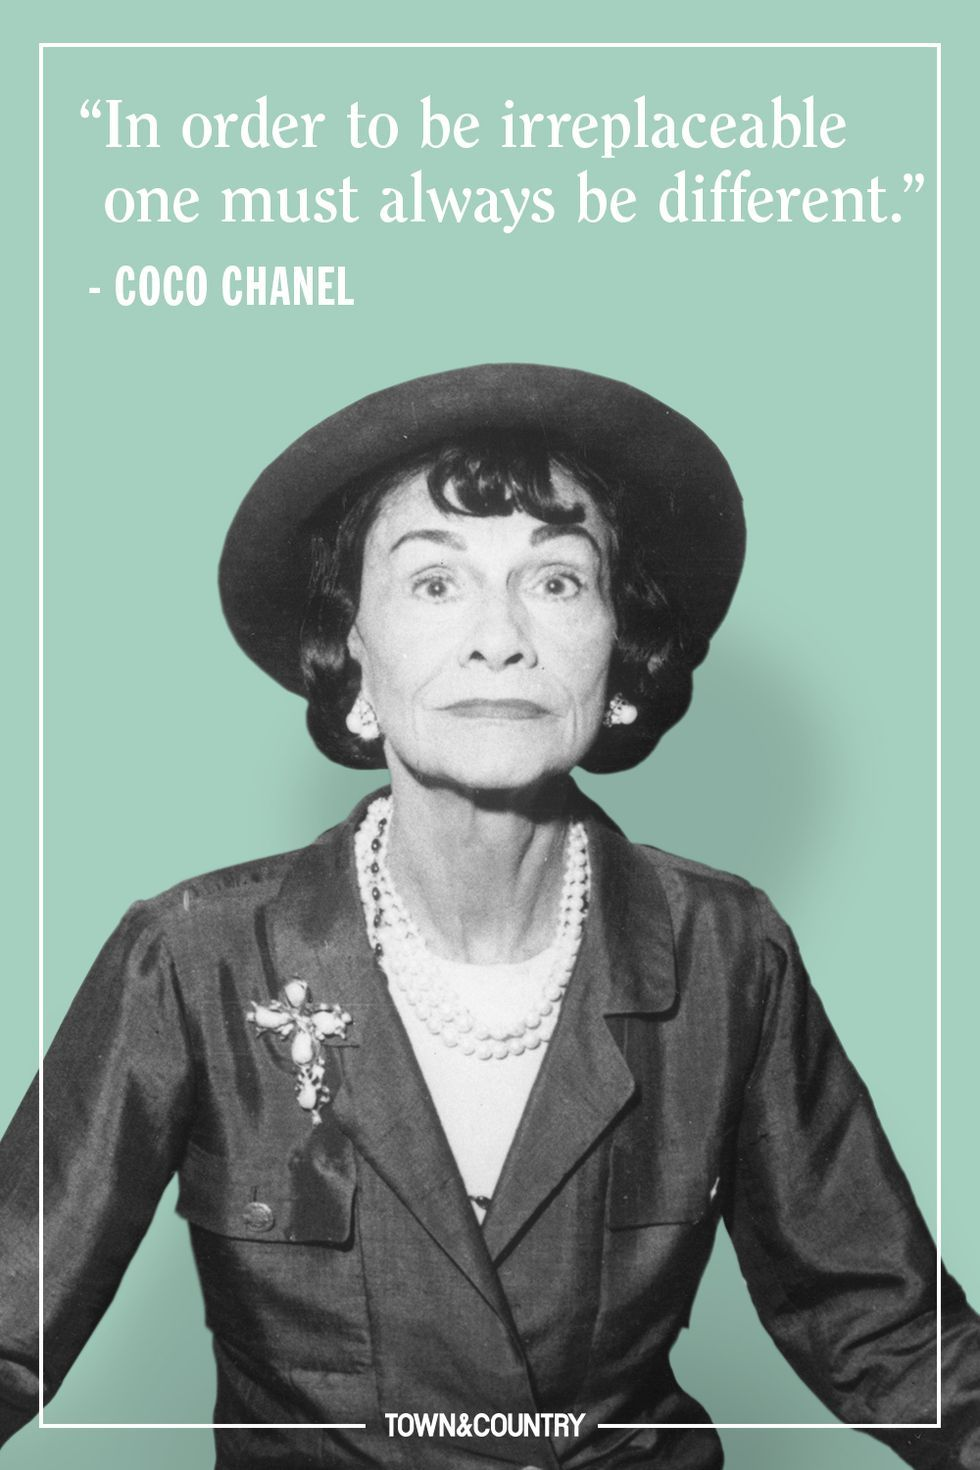 25 Coco Chanel Quotes Every Woman Should Live By - Best Coco Chanel Sayings fdd01125a94